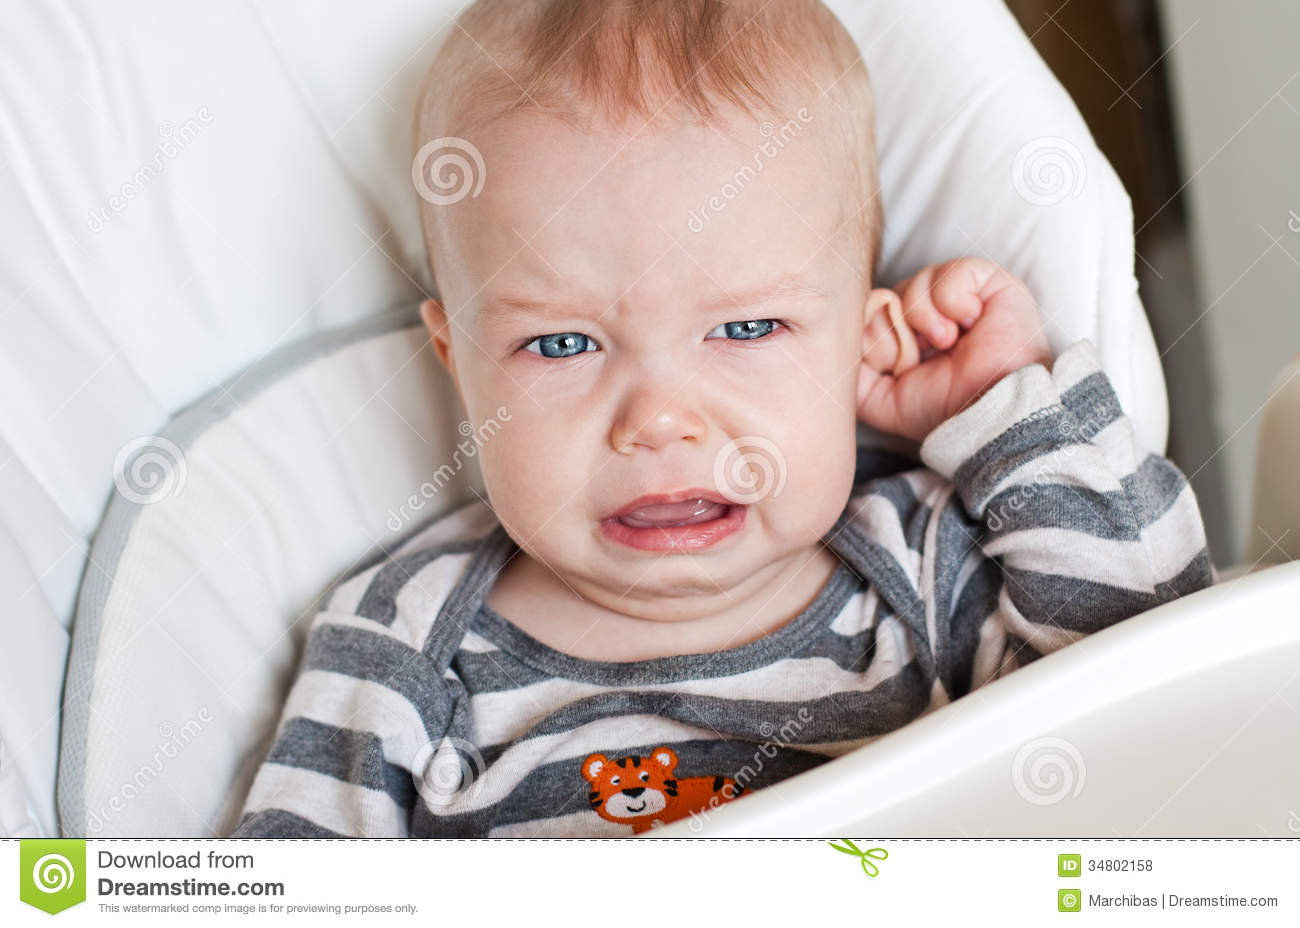 Child/ parent relationship in the Little Boy Crying?